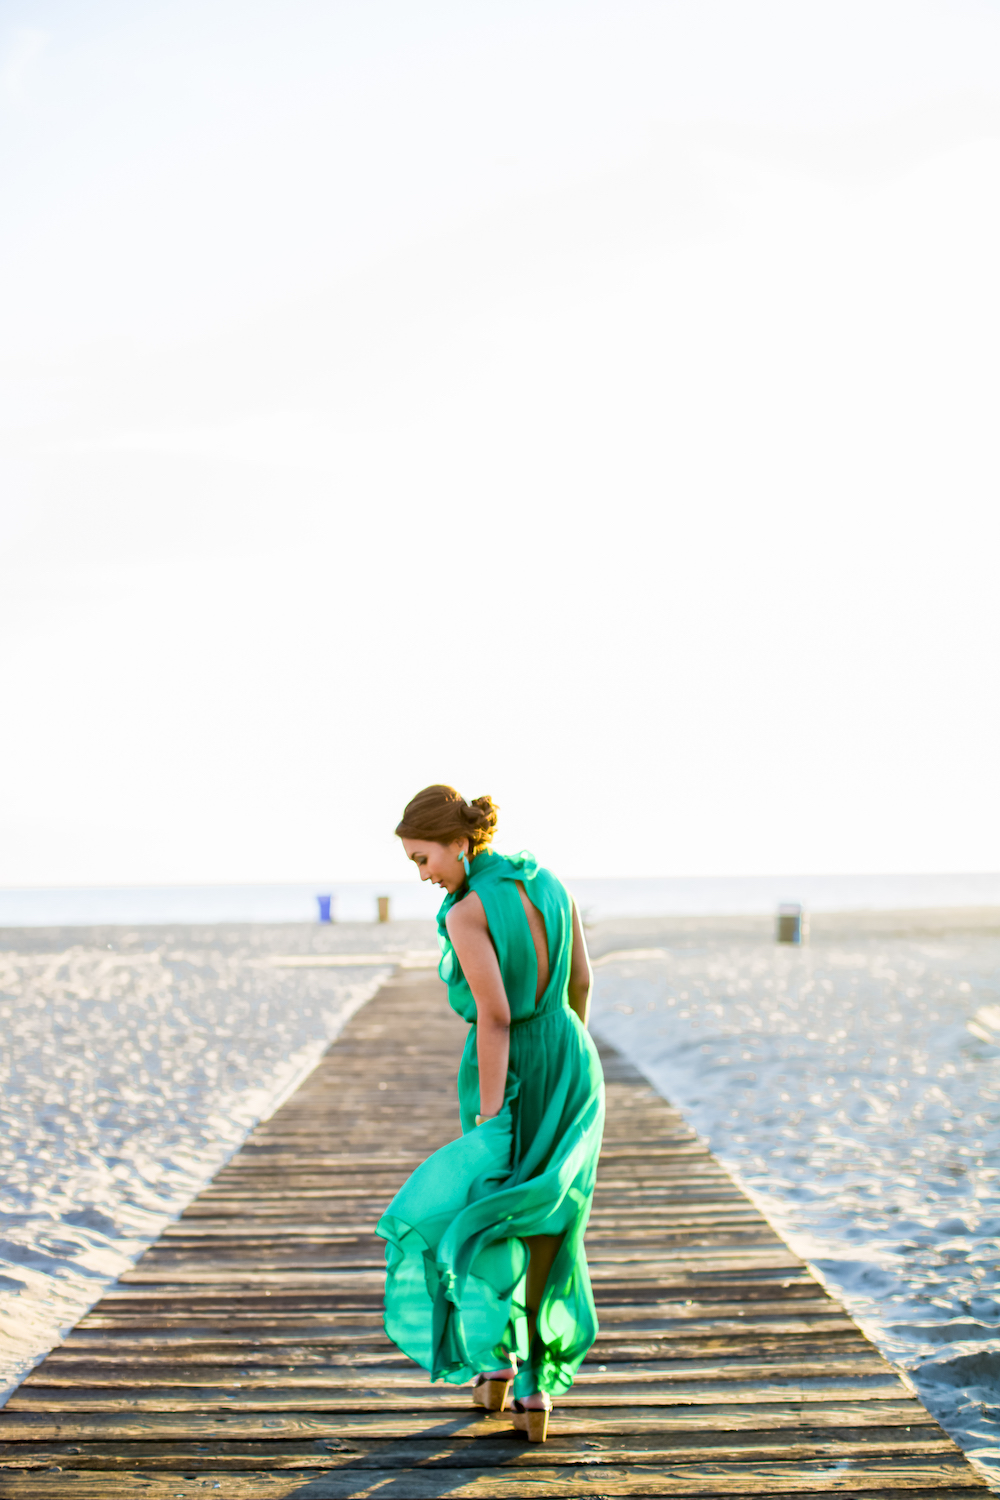 Fashionable Lady in Green Dress on Venice Beach Boardwalk